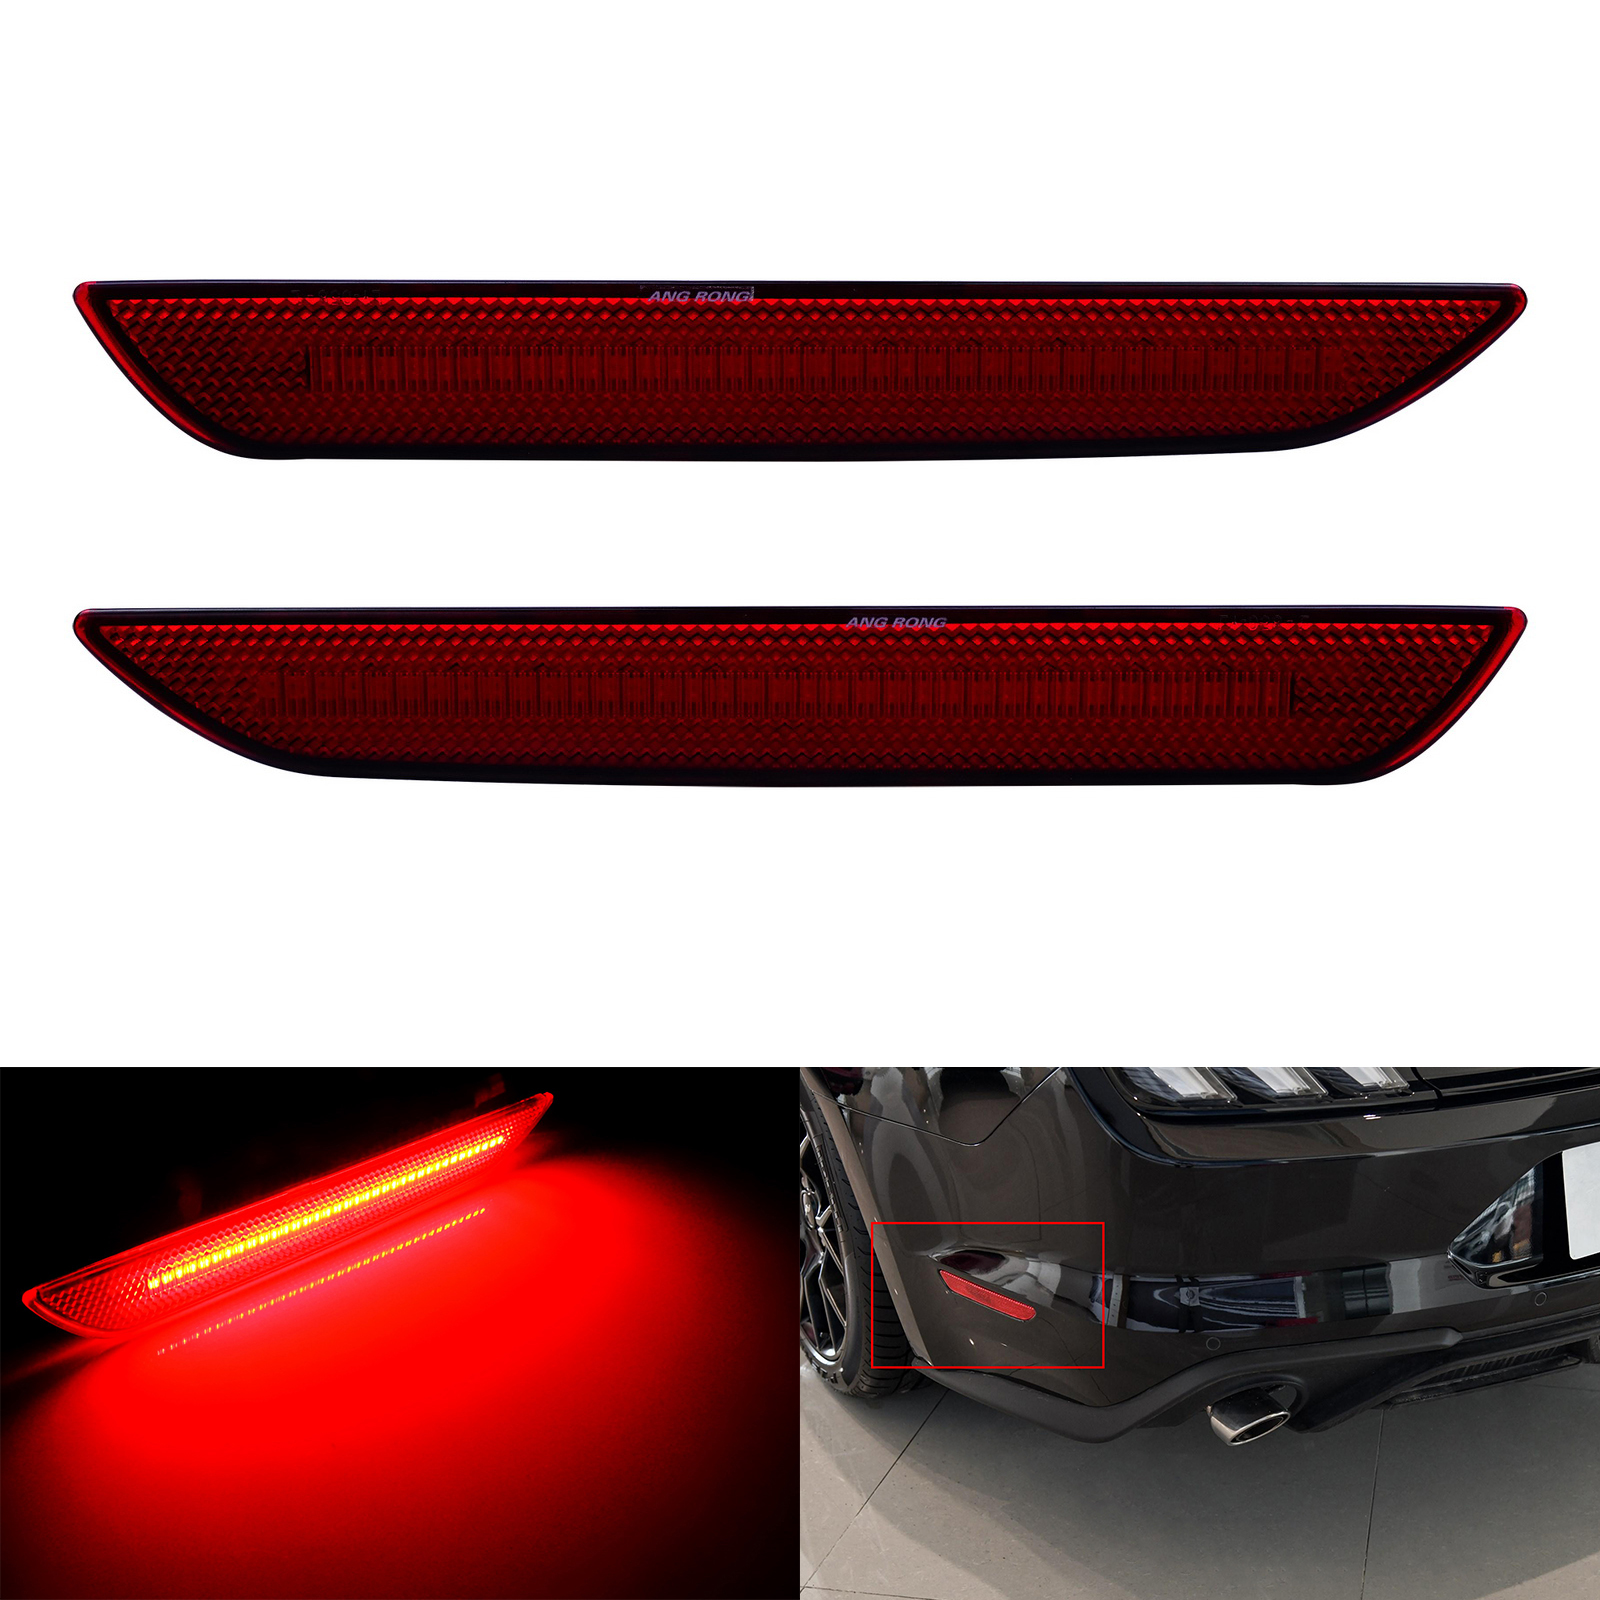 2x For Ford Mustang 2015+ Rear LED Side Marker Bumper Reflector Light Lamps Red Lens